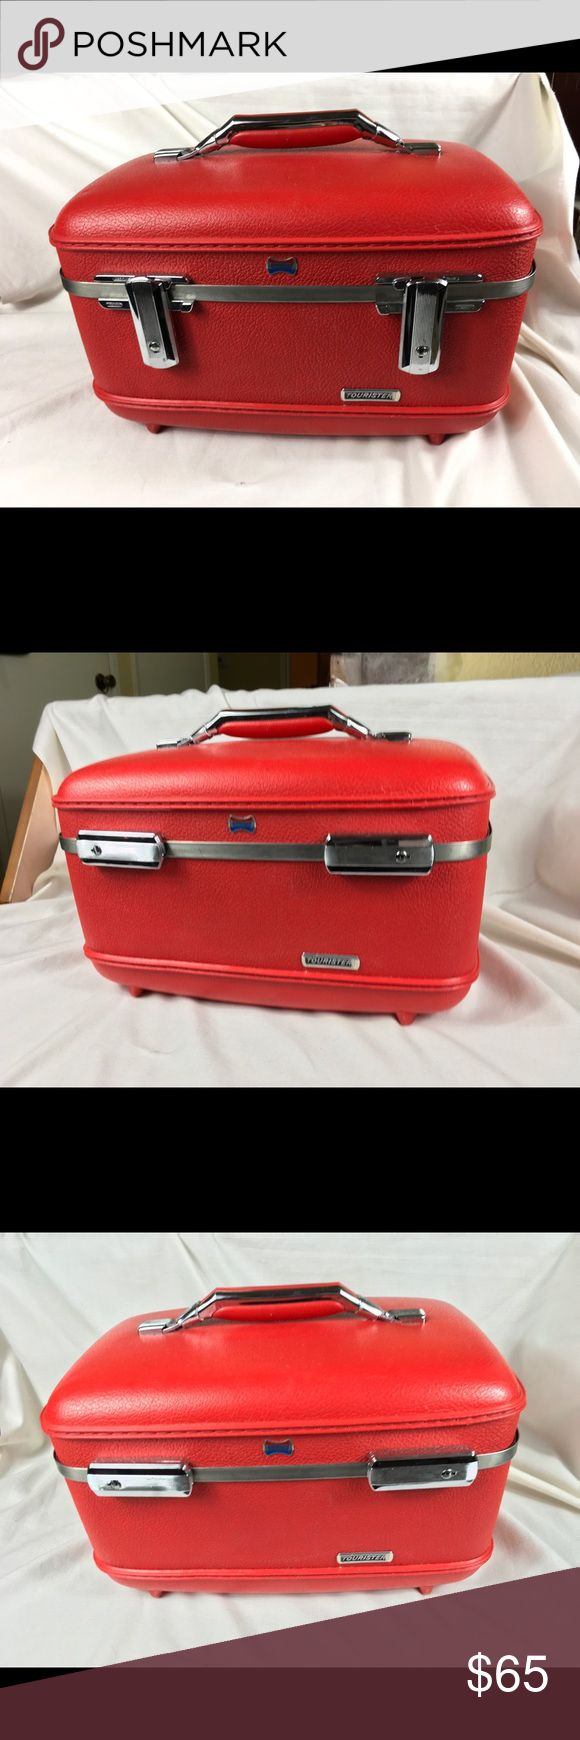 """Vintage Red American Tourister train case 1960s hard shell Red Train case by American Tourister for Samsonite. It has the tray and mirror. This vintage treasure is in decent shape with some stains and marks (see pictures for details). This is a beautiful red case, highly collectable and hard to find! 15"""" long x 9 1/2"""" wide x 8 1/2"""" tall American Tourister Bags Travel Bags"""